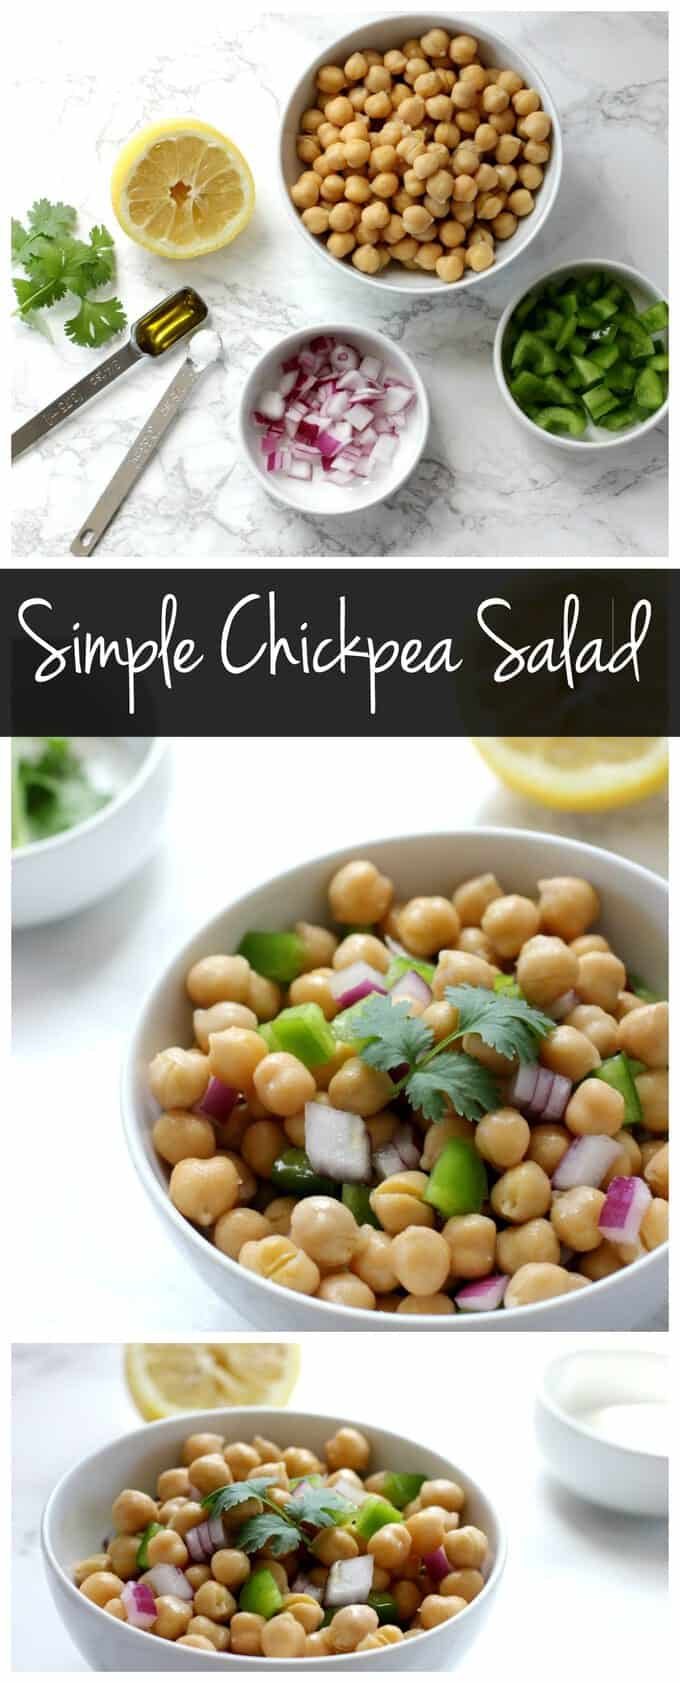 This simple chickpea salad is an easy vegan and gluten free side dish! It's a low calorie recipe that is full of protein and fiber!